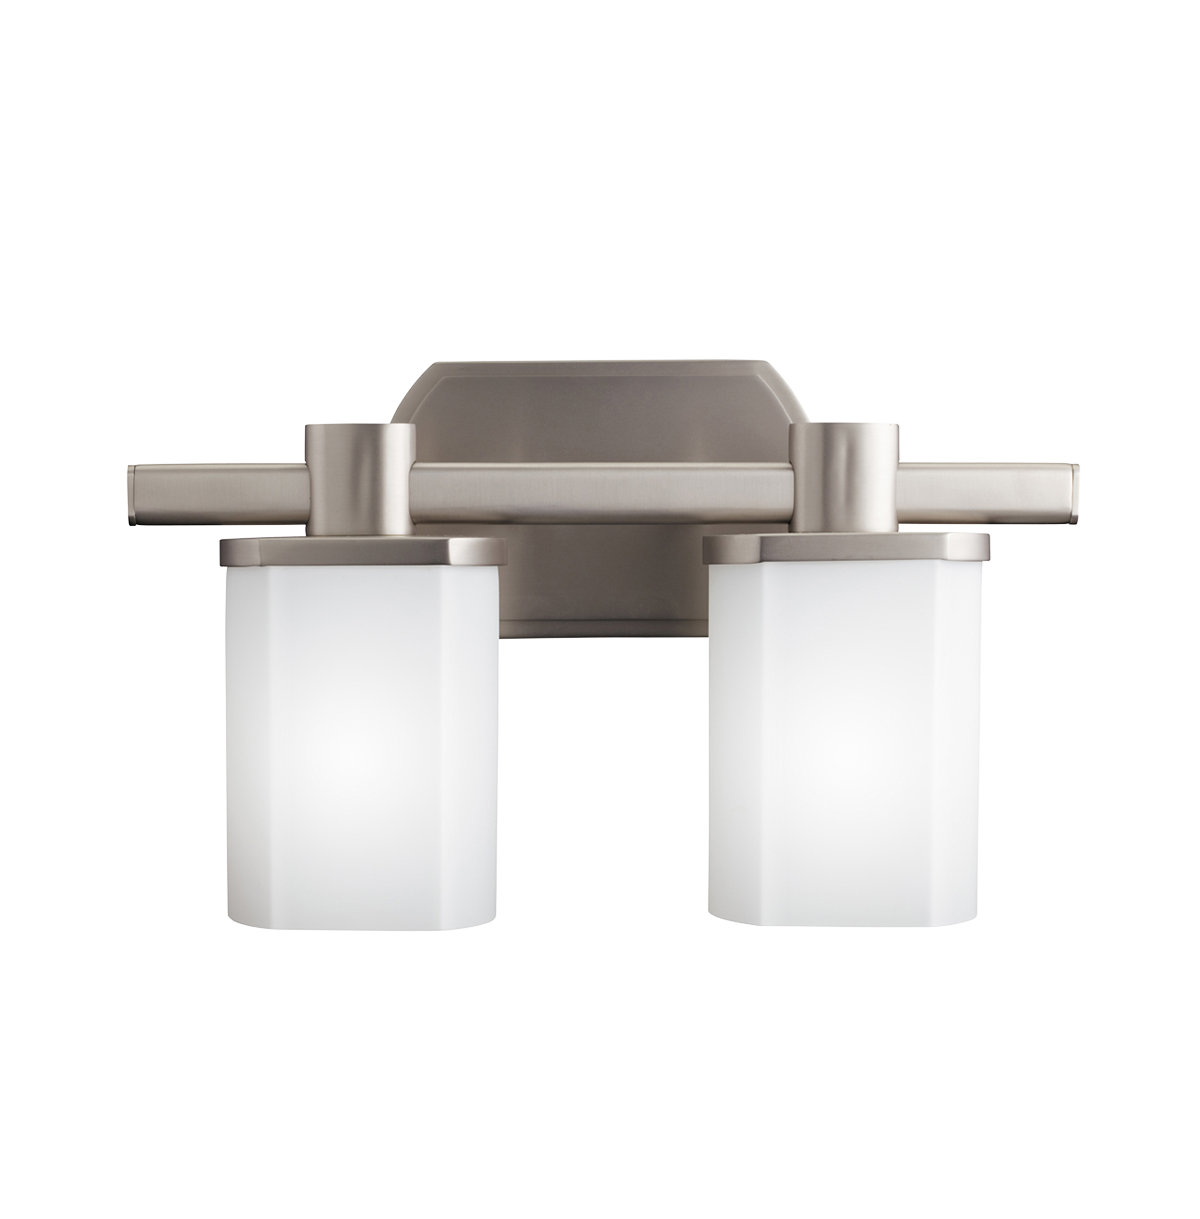 Photo Gallery For Photographers Kichler Lighting Kichler Brushed Nickel Modern Bathroom Light with White Glass